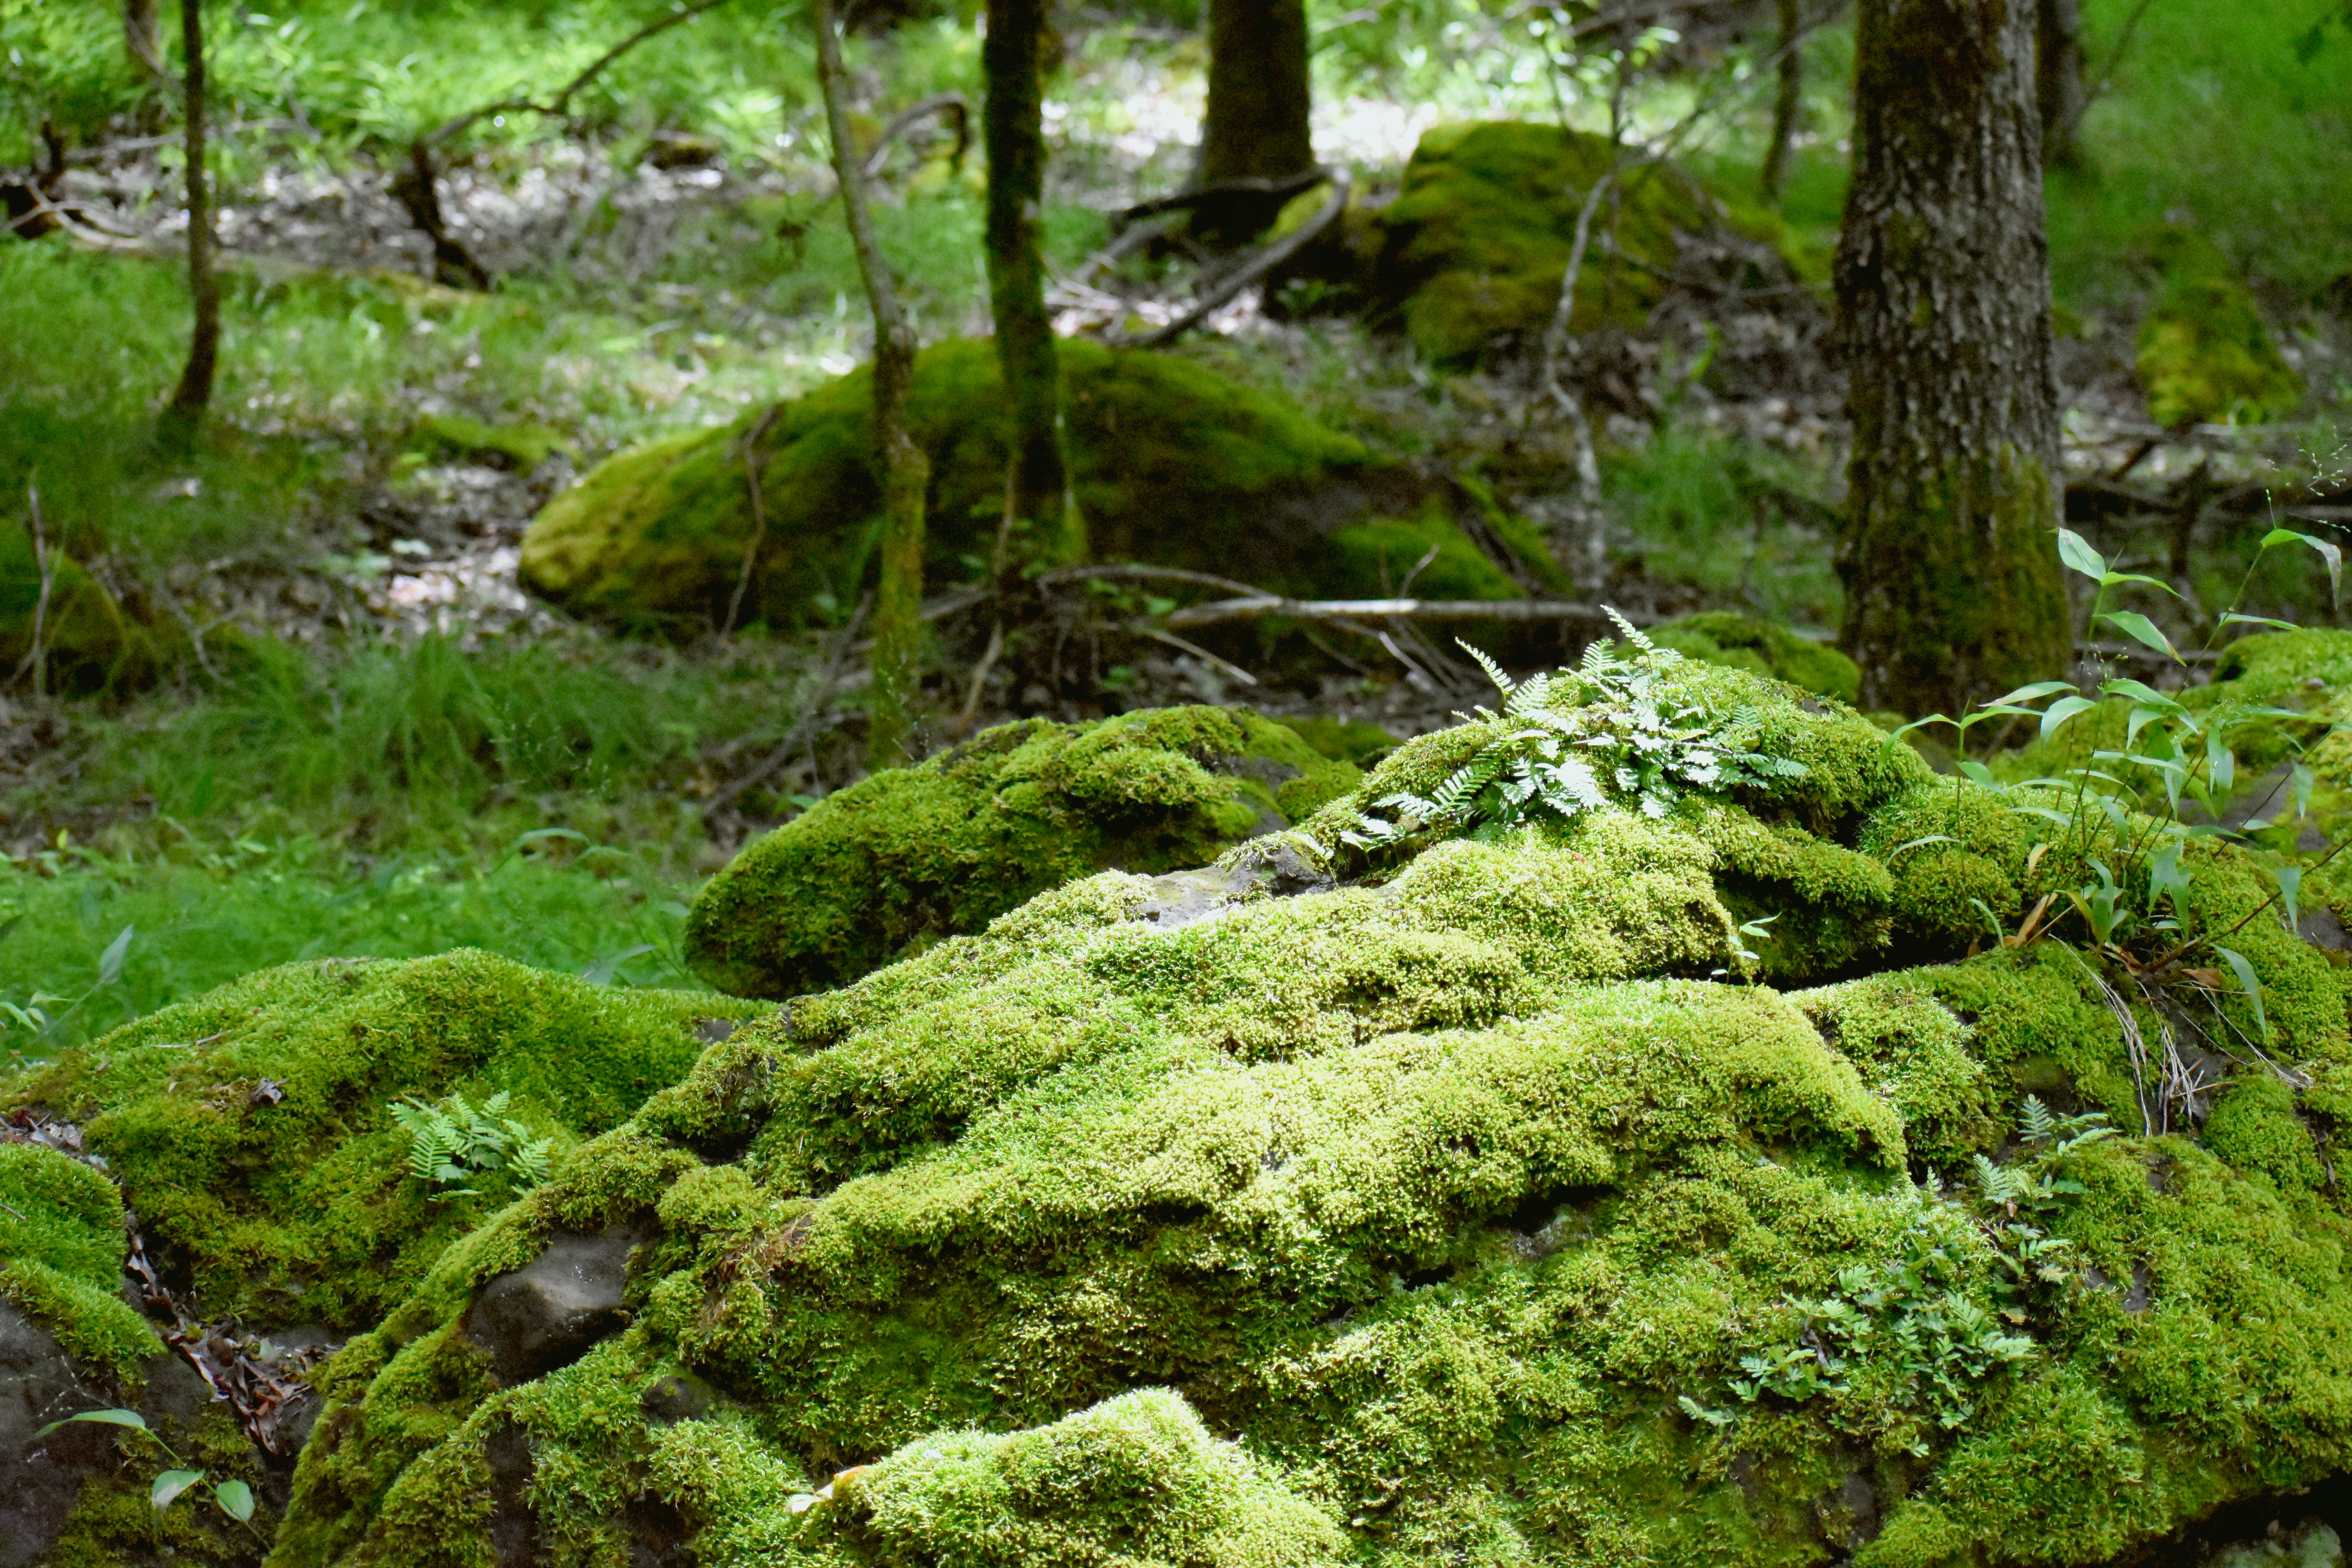 Rounded, moss-covered boulders in a hardwood forest.